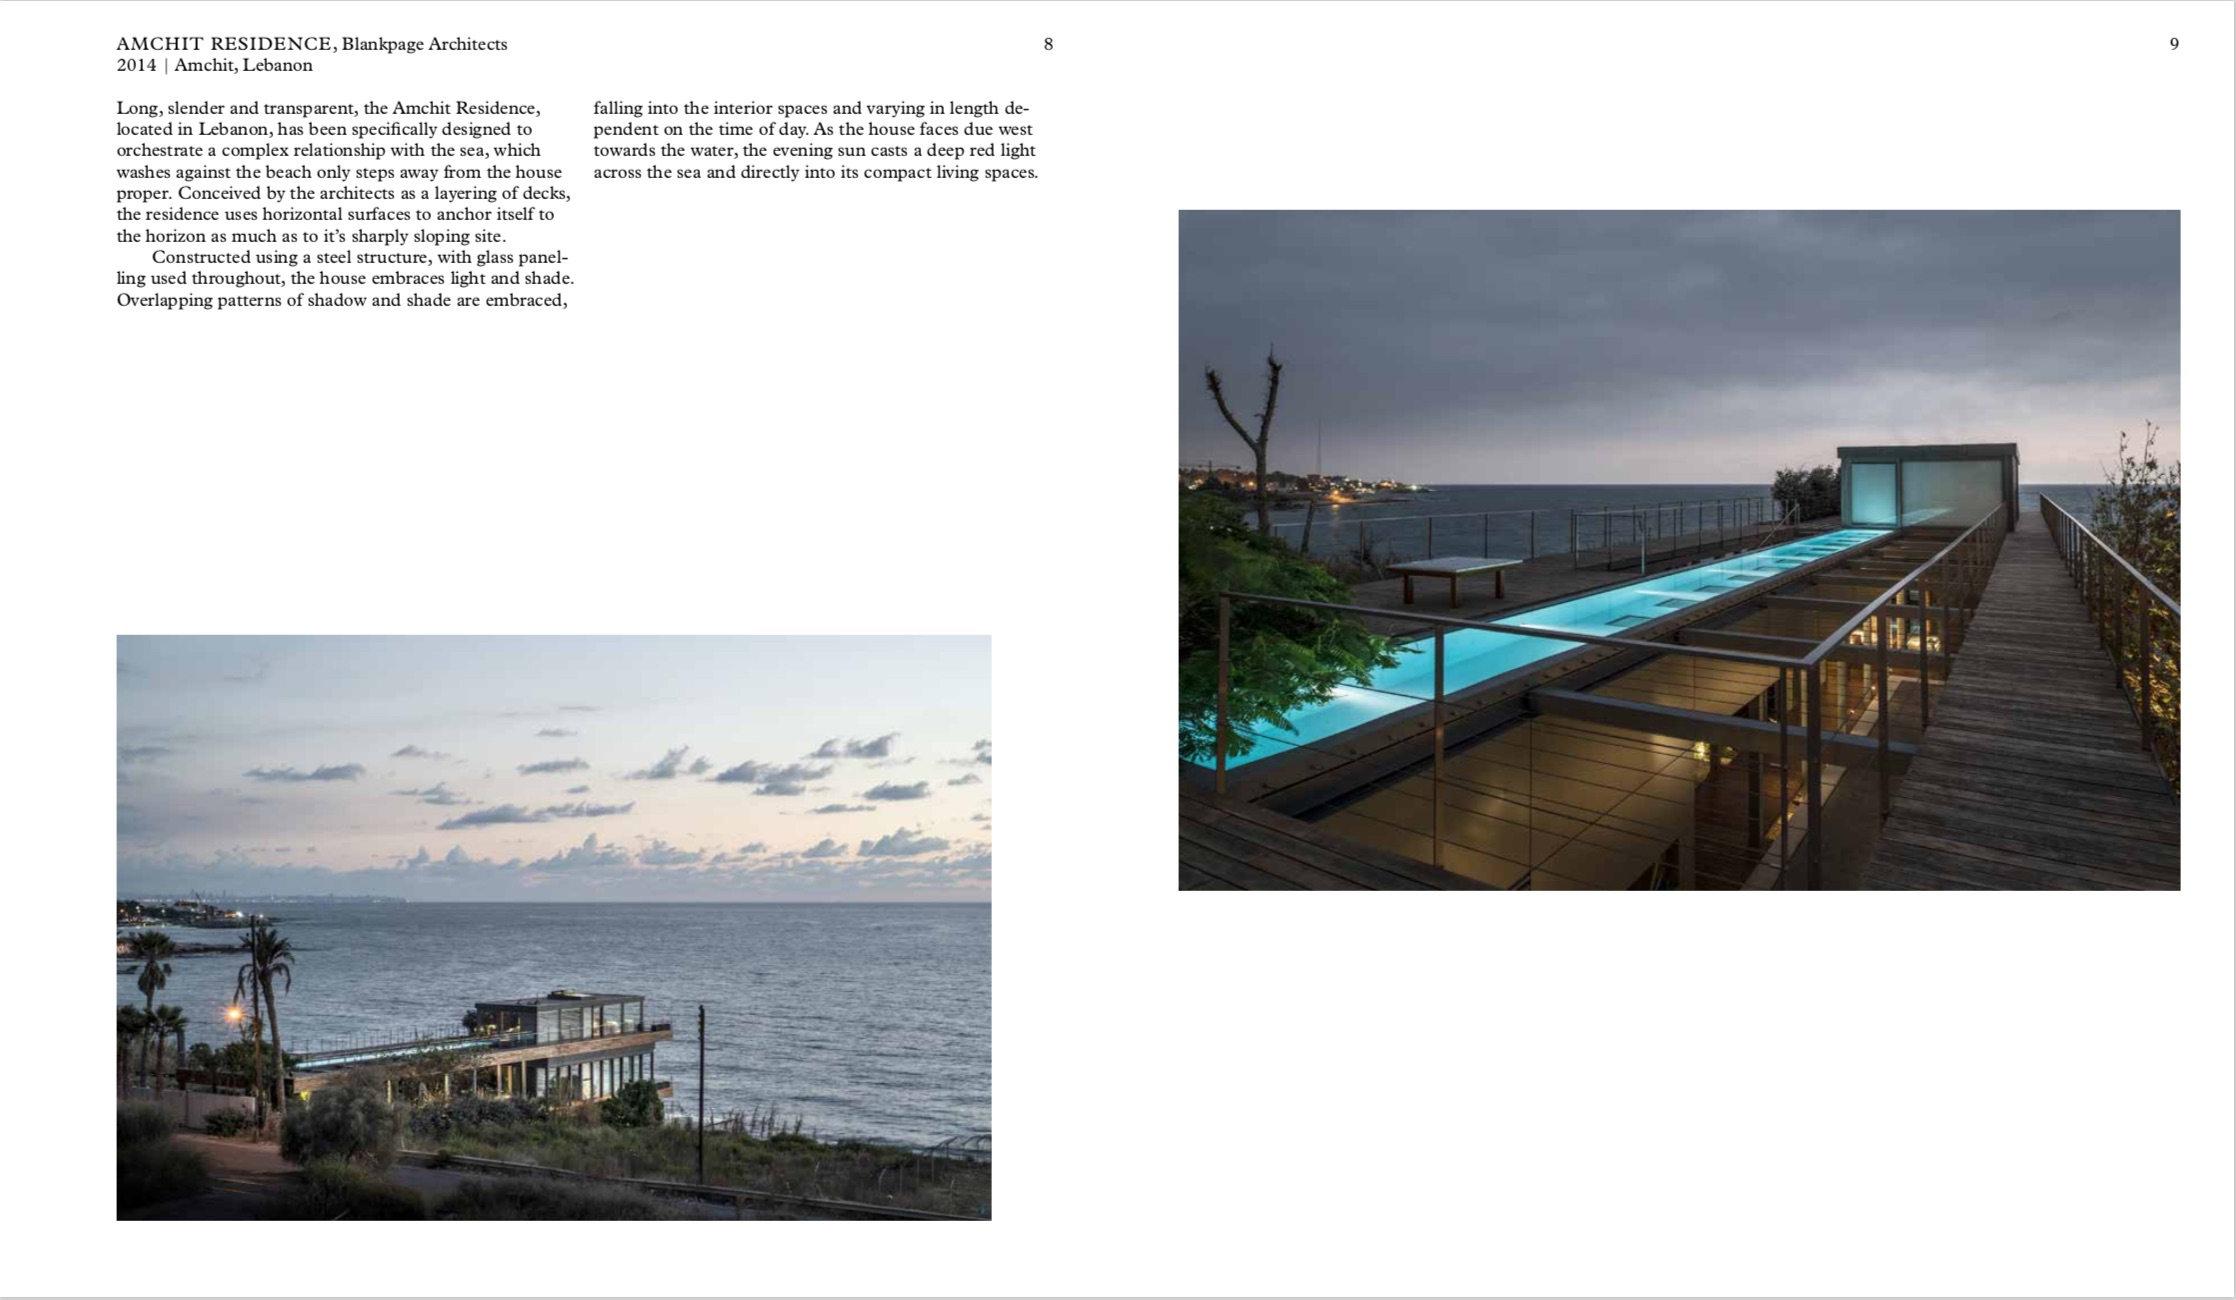 By Phaidon Editors from Living on Water: Contemporary Houses Framed by Water copyright Phaidon 2018